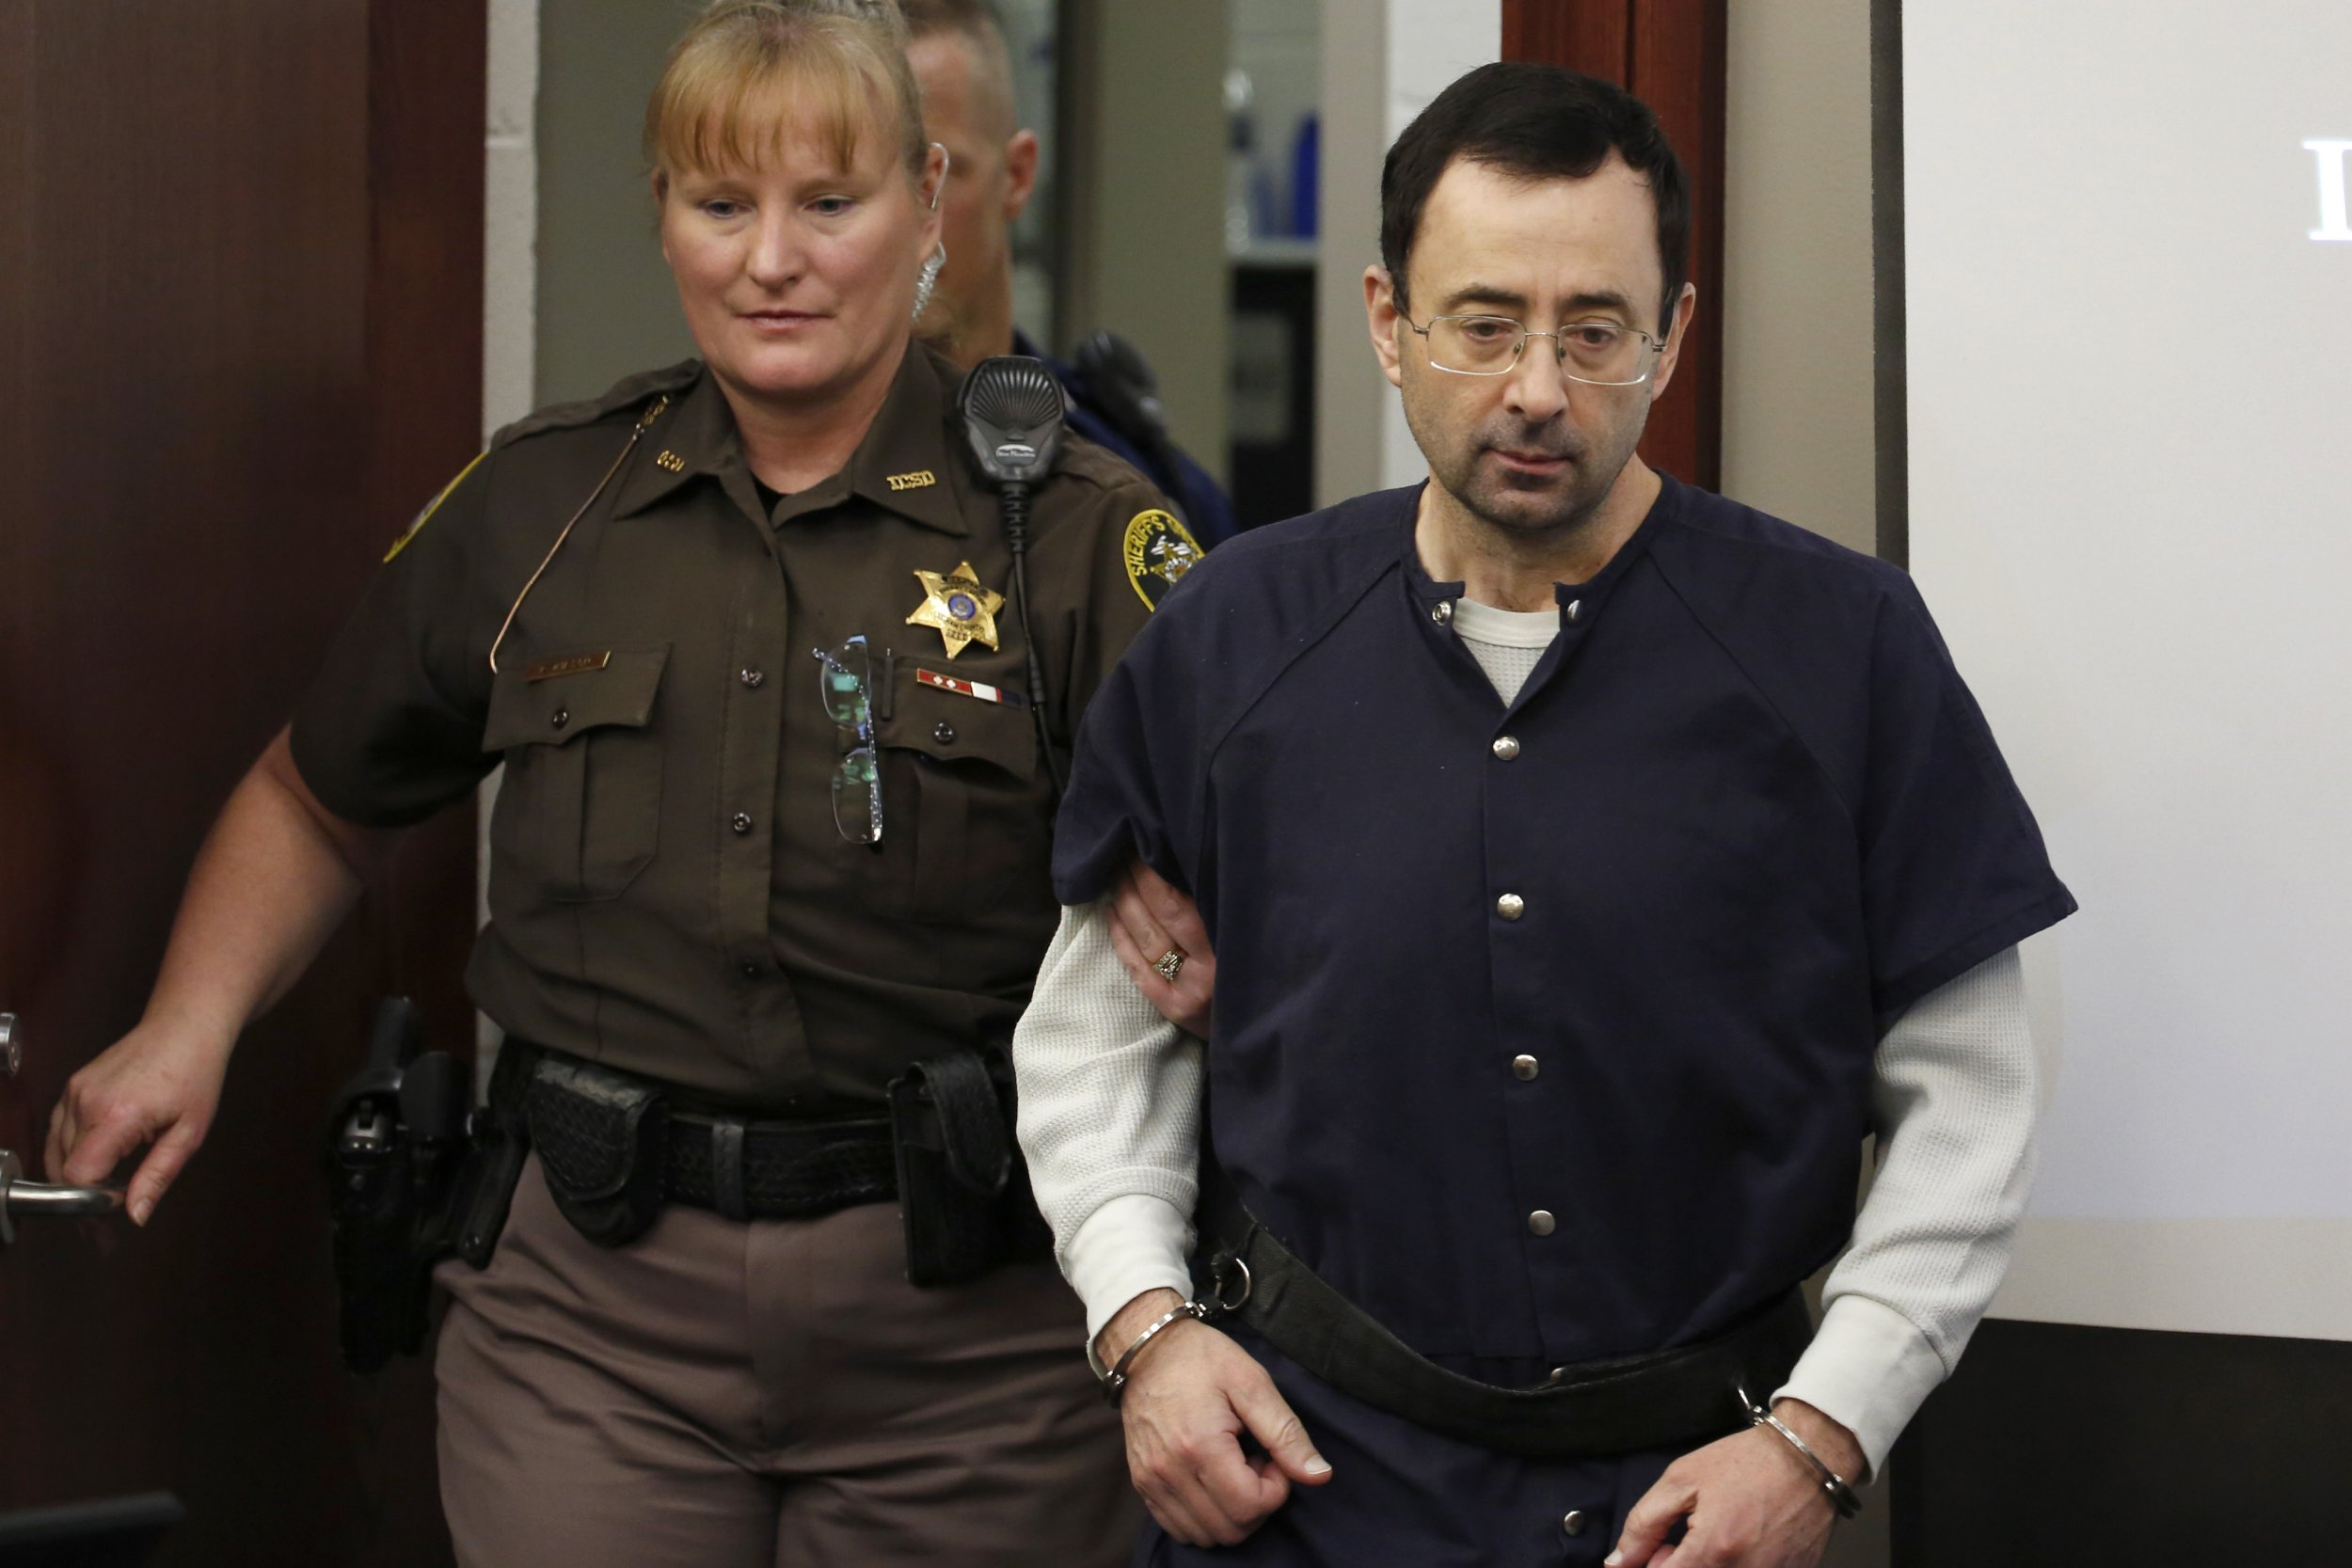 Former US gymnastics doctor Larry Nassar sentenced to 175 years in prison